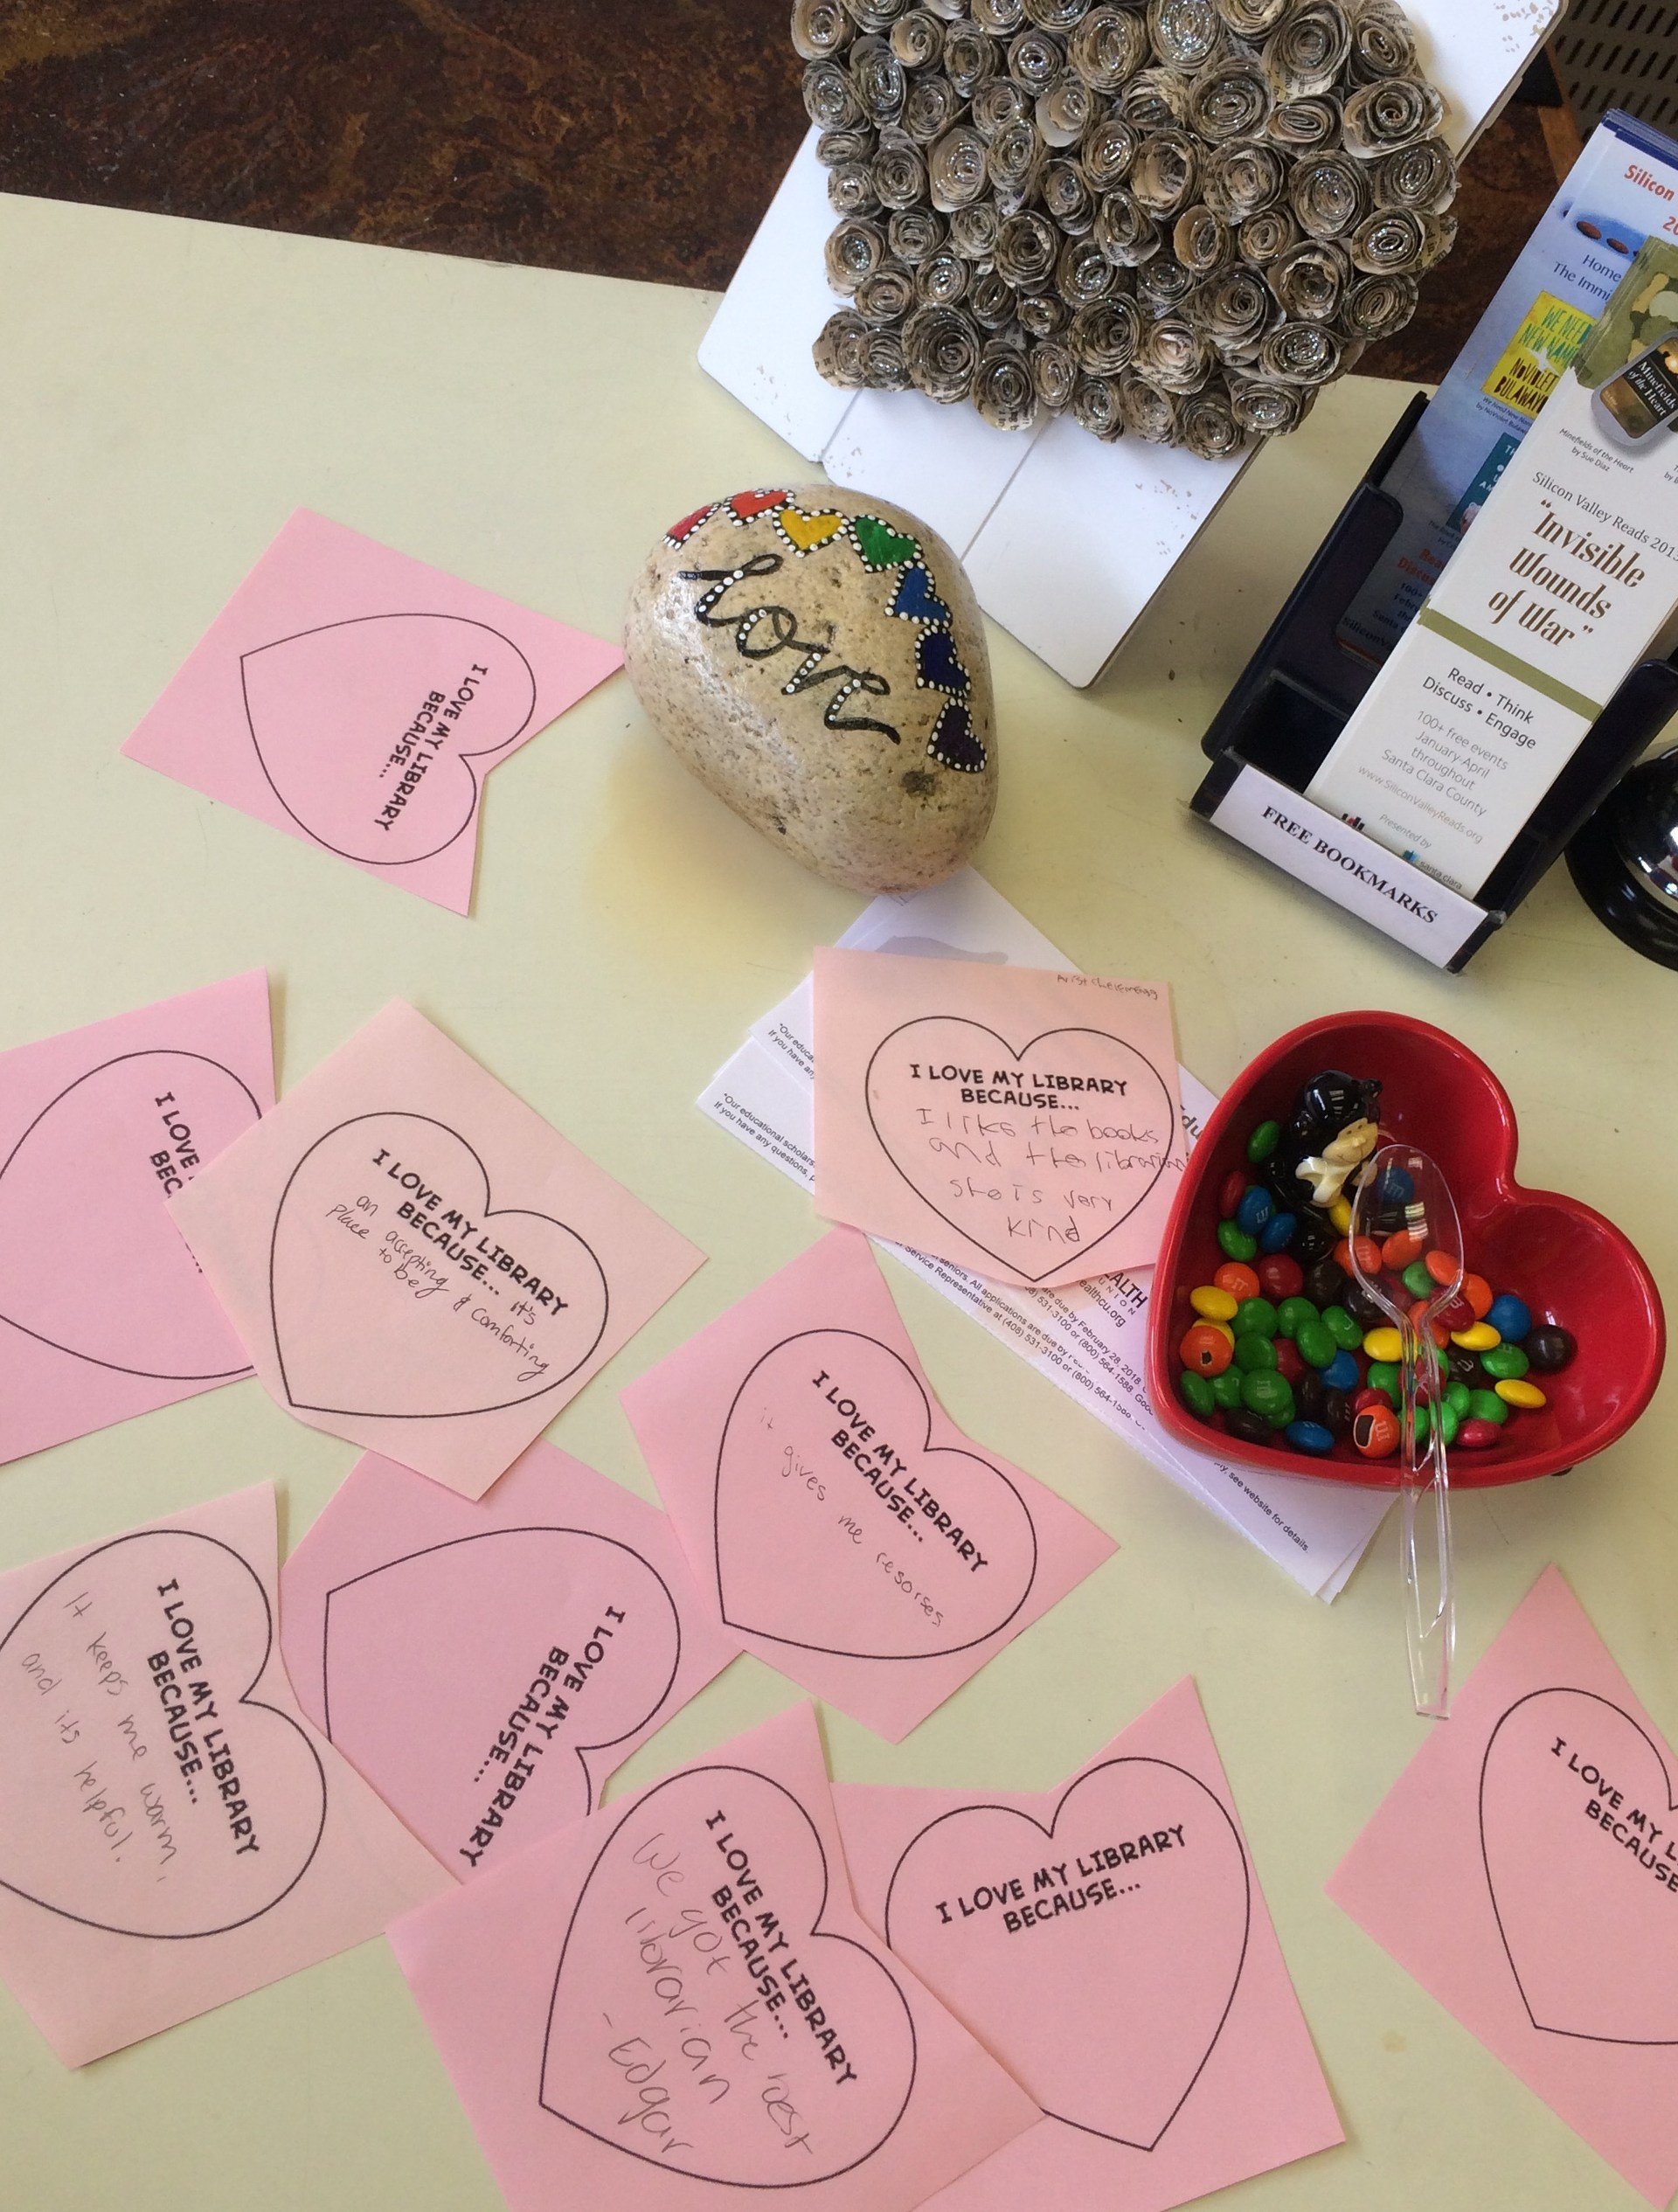 Image of hearts on Library counter